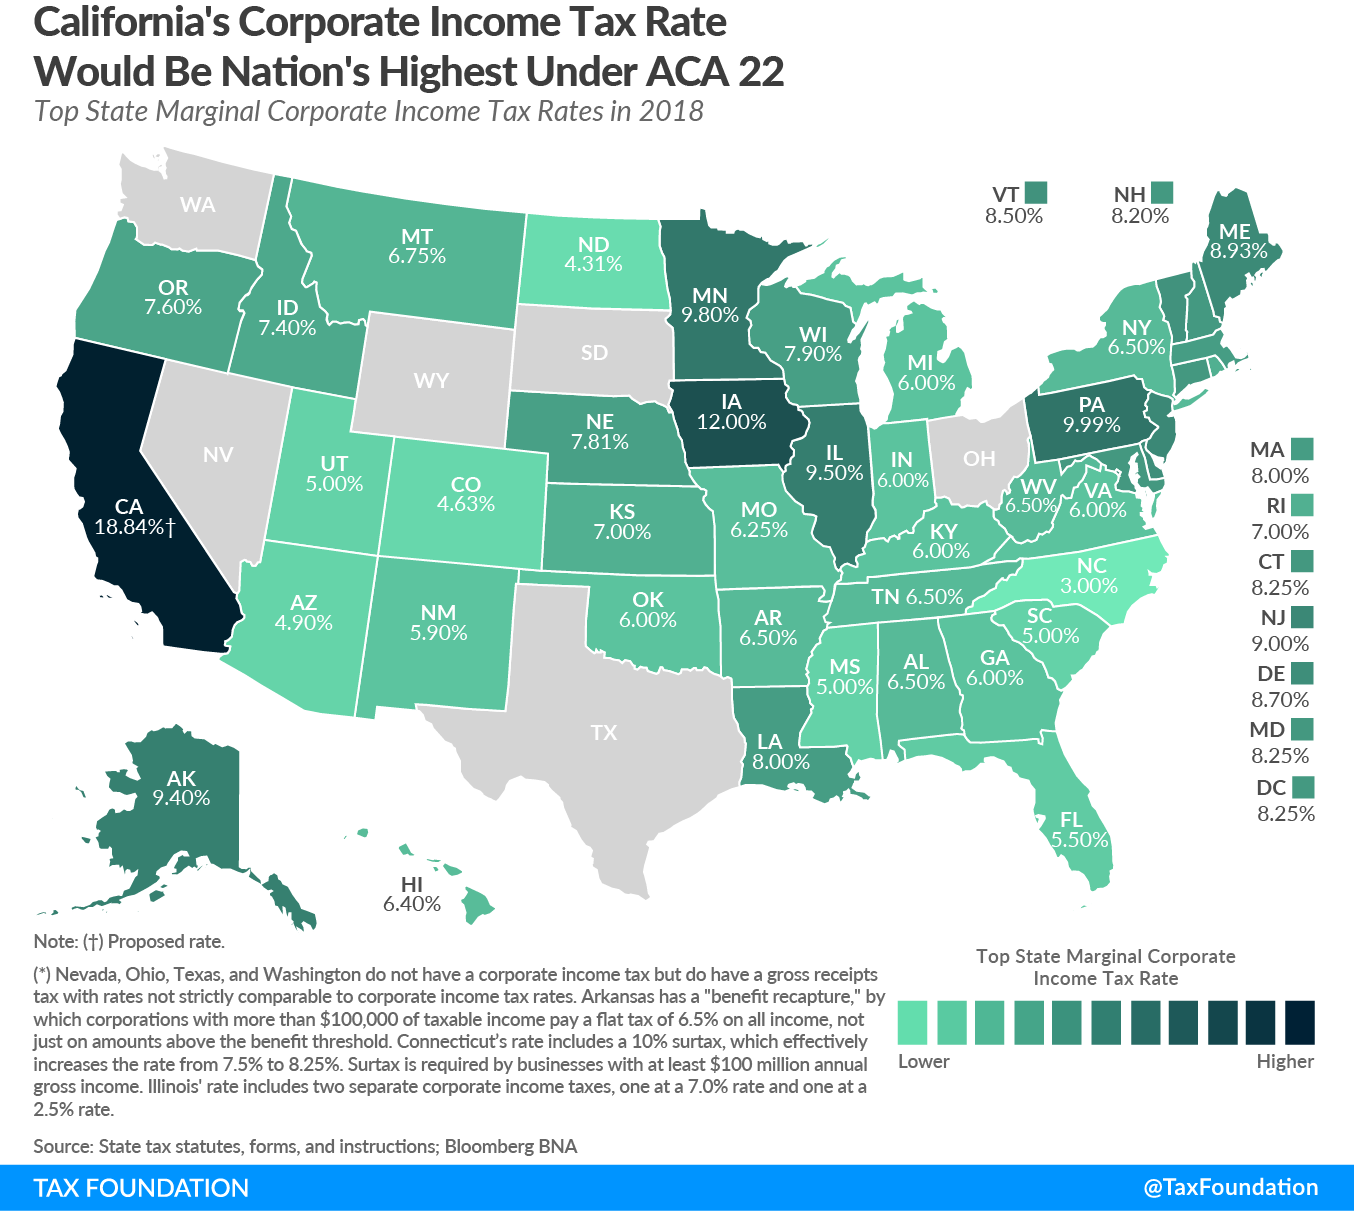 California's Corporate Income Tax Rate Would Be Nation's Highest Under ACA 22